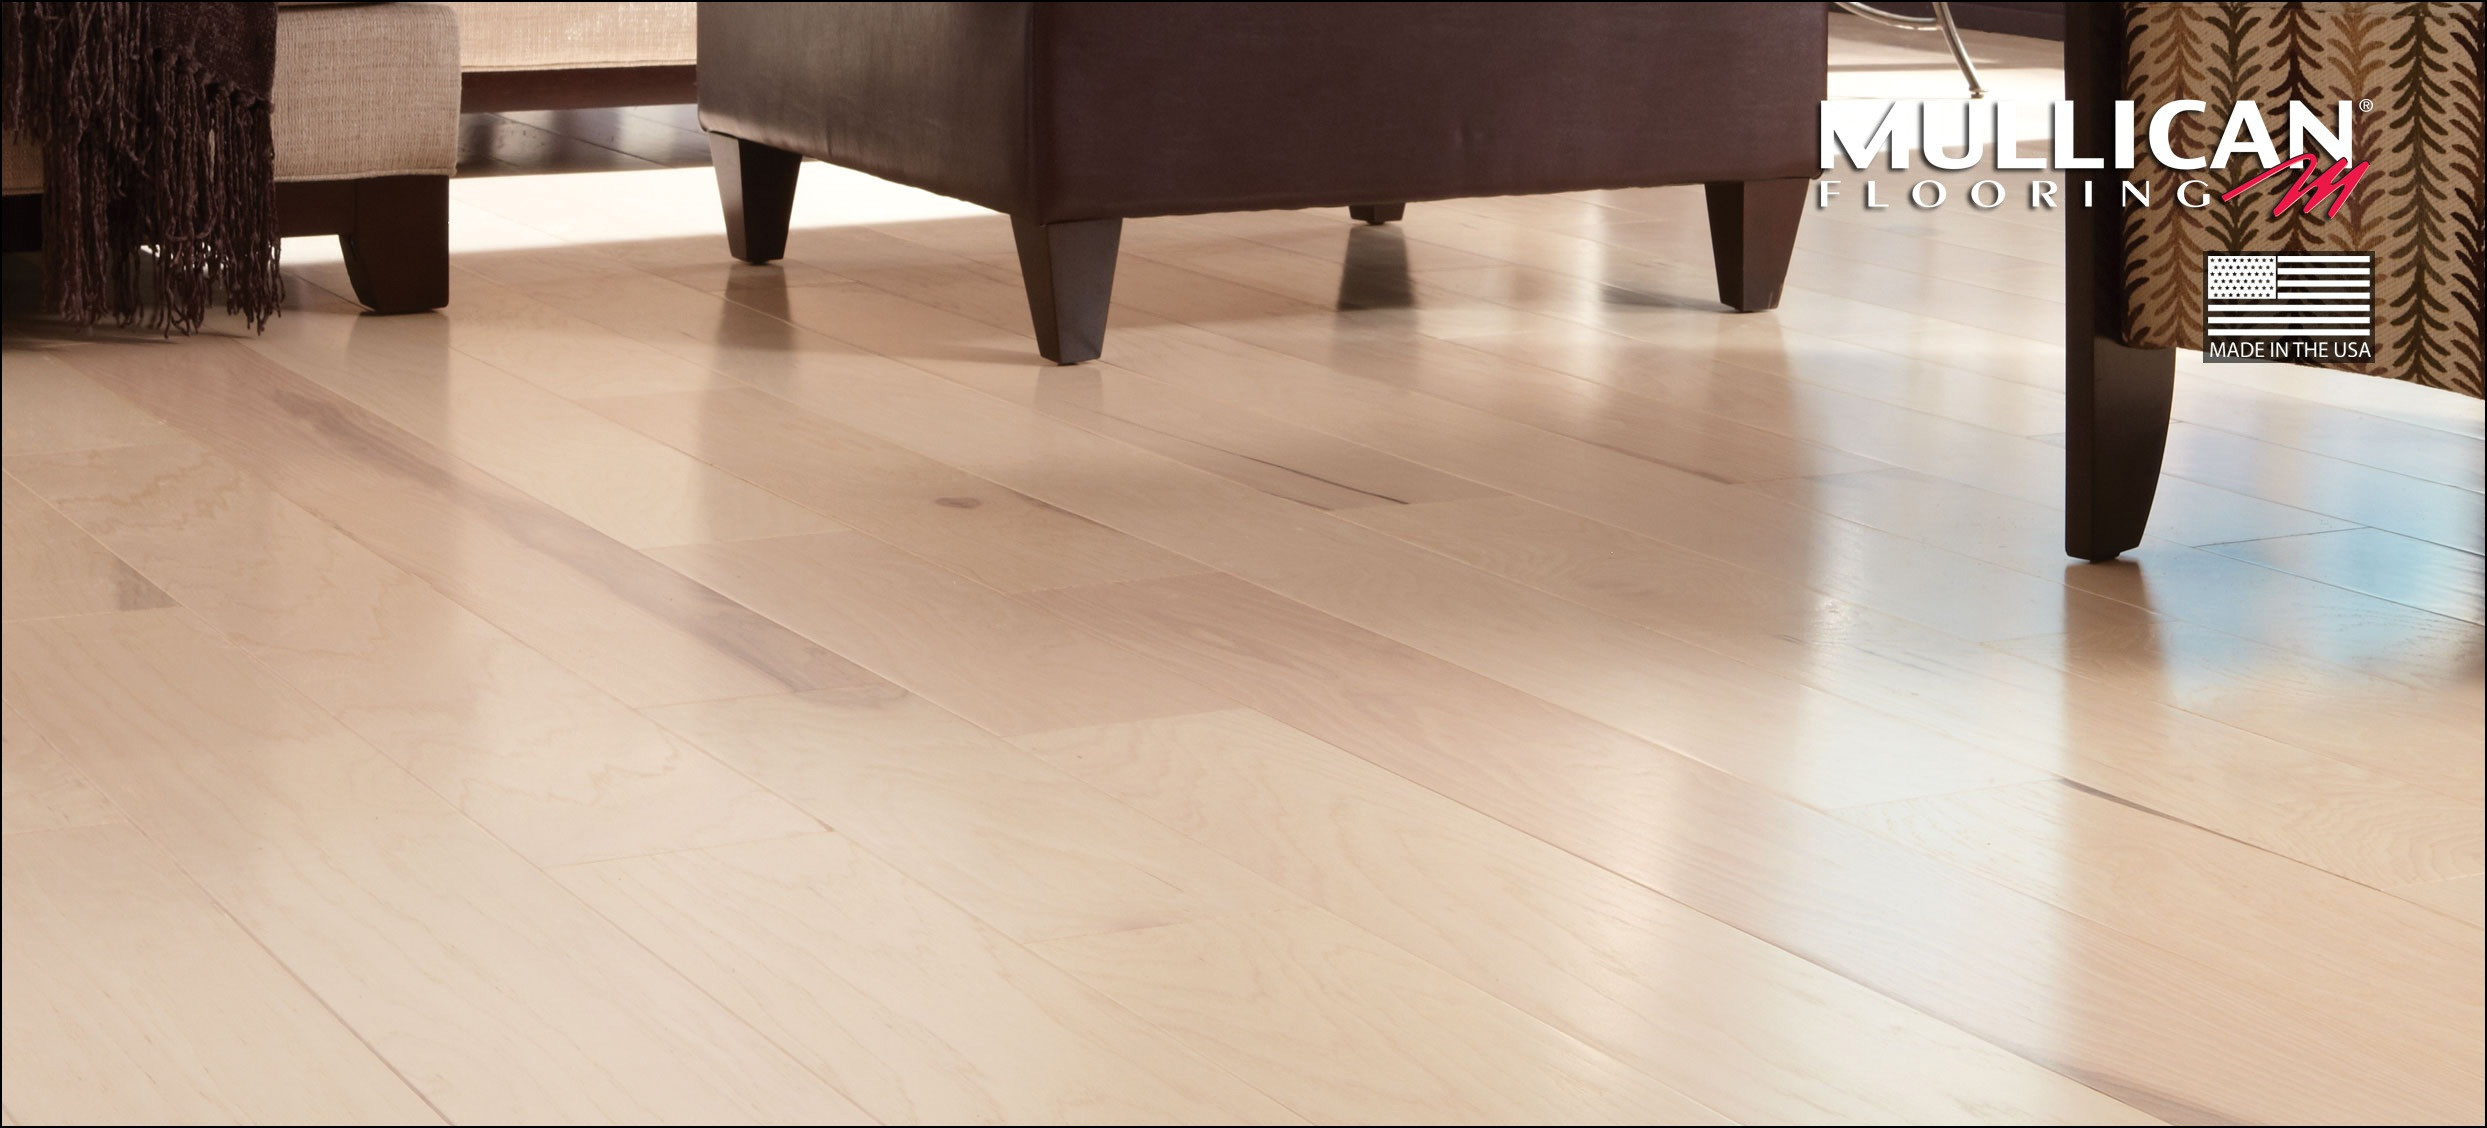 discount hardwood flooring calgary of hardwood flooring suppliers france flooring ideas with hardwood flooring installation san diego mullican flooring home of hardwood flooring installation san diego